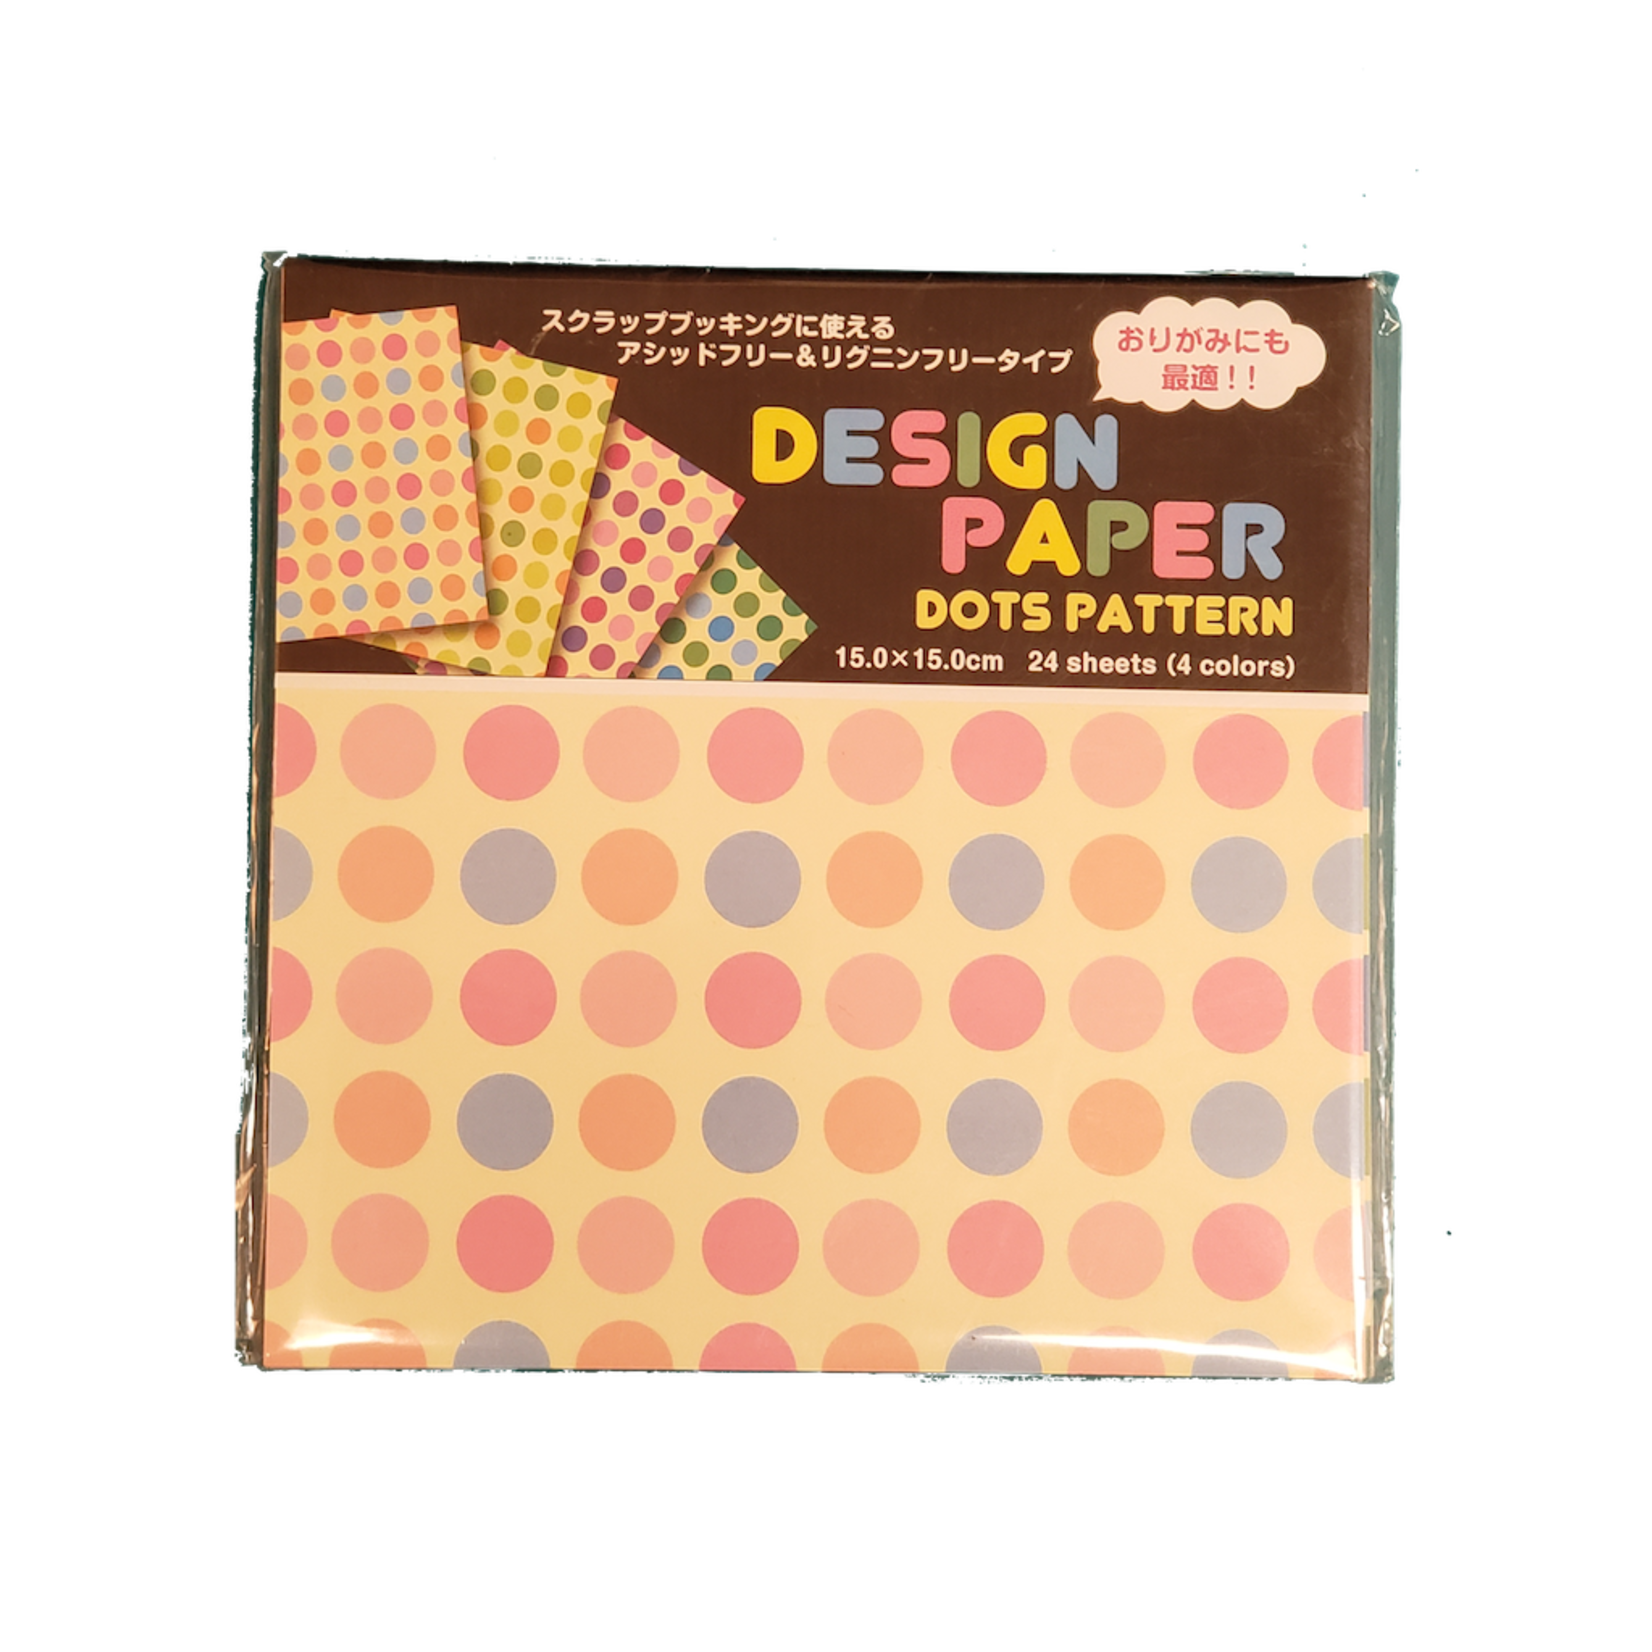 Kotobuki Trading Co. Inc Origami Design Dots 4 Colors (24)